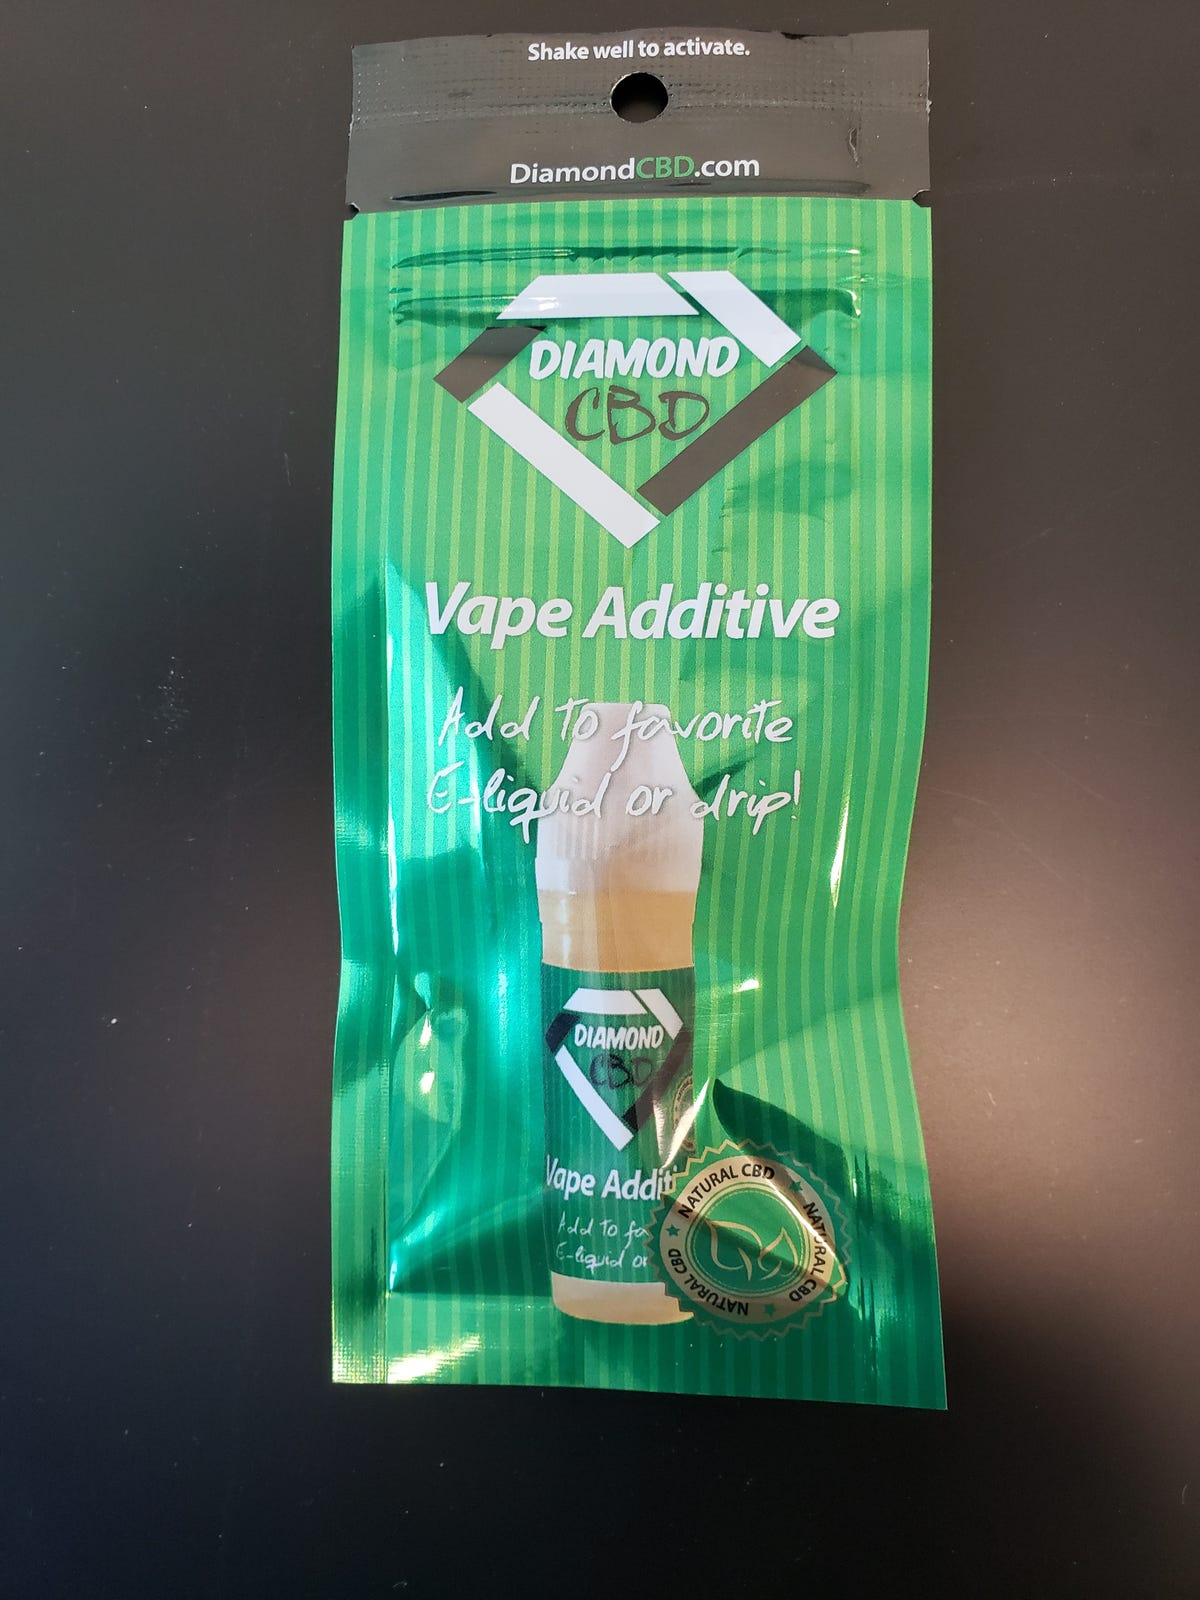 MBN: Some vape oil confiscated last week found to contain